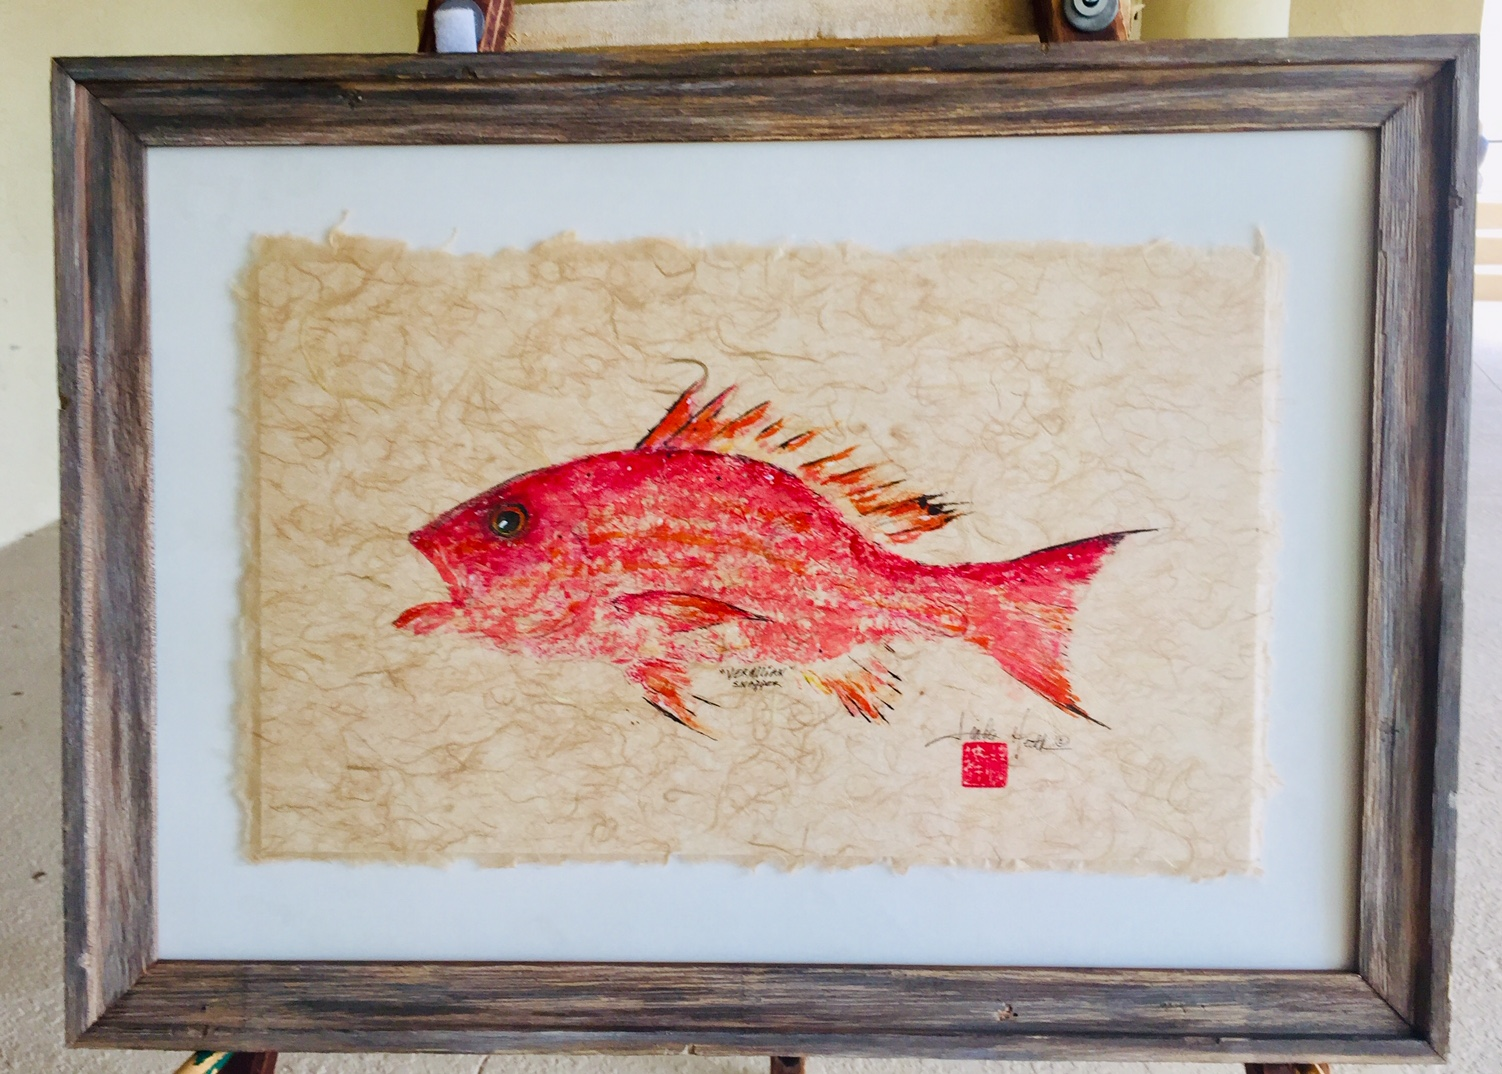 Original - Vermillion Snapper